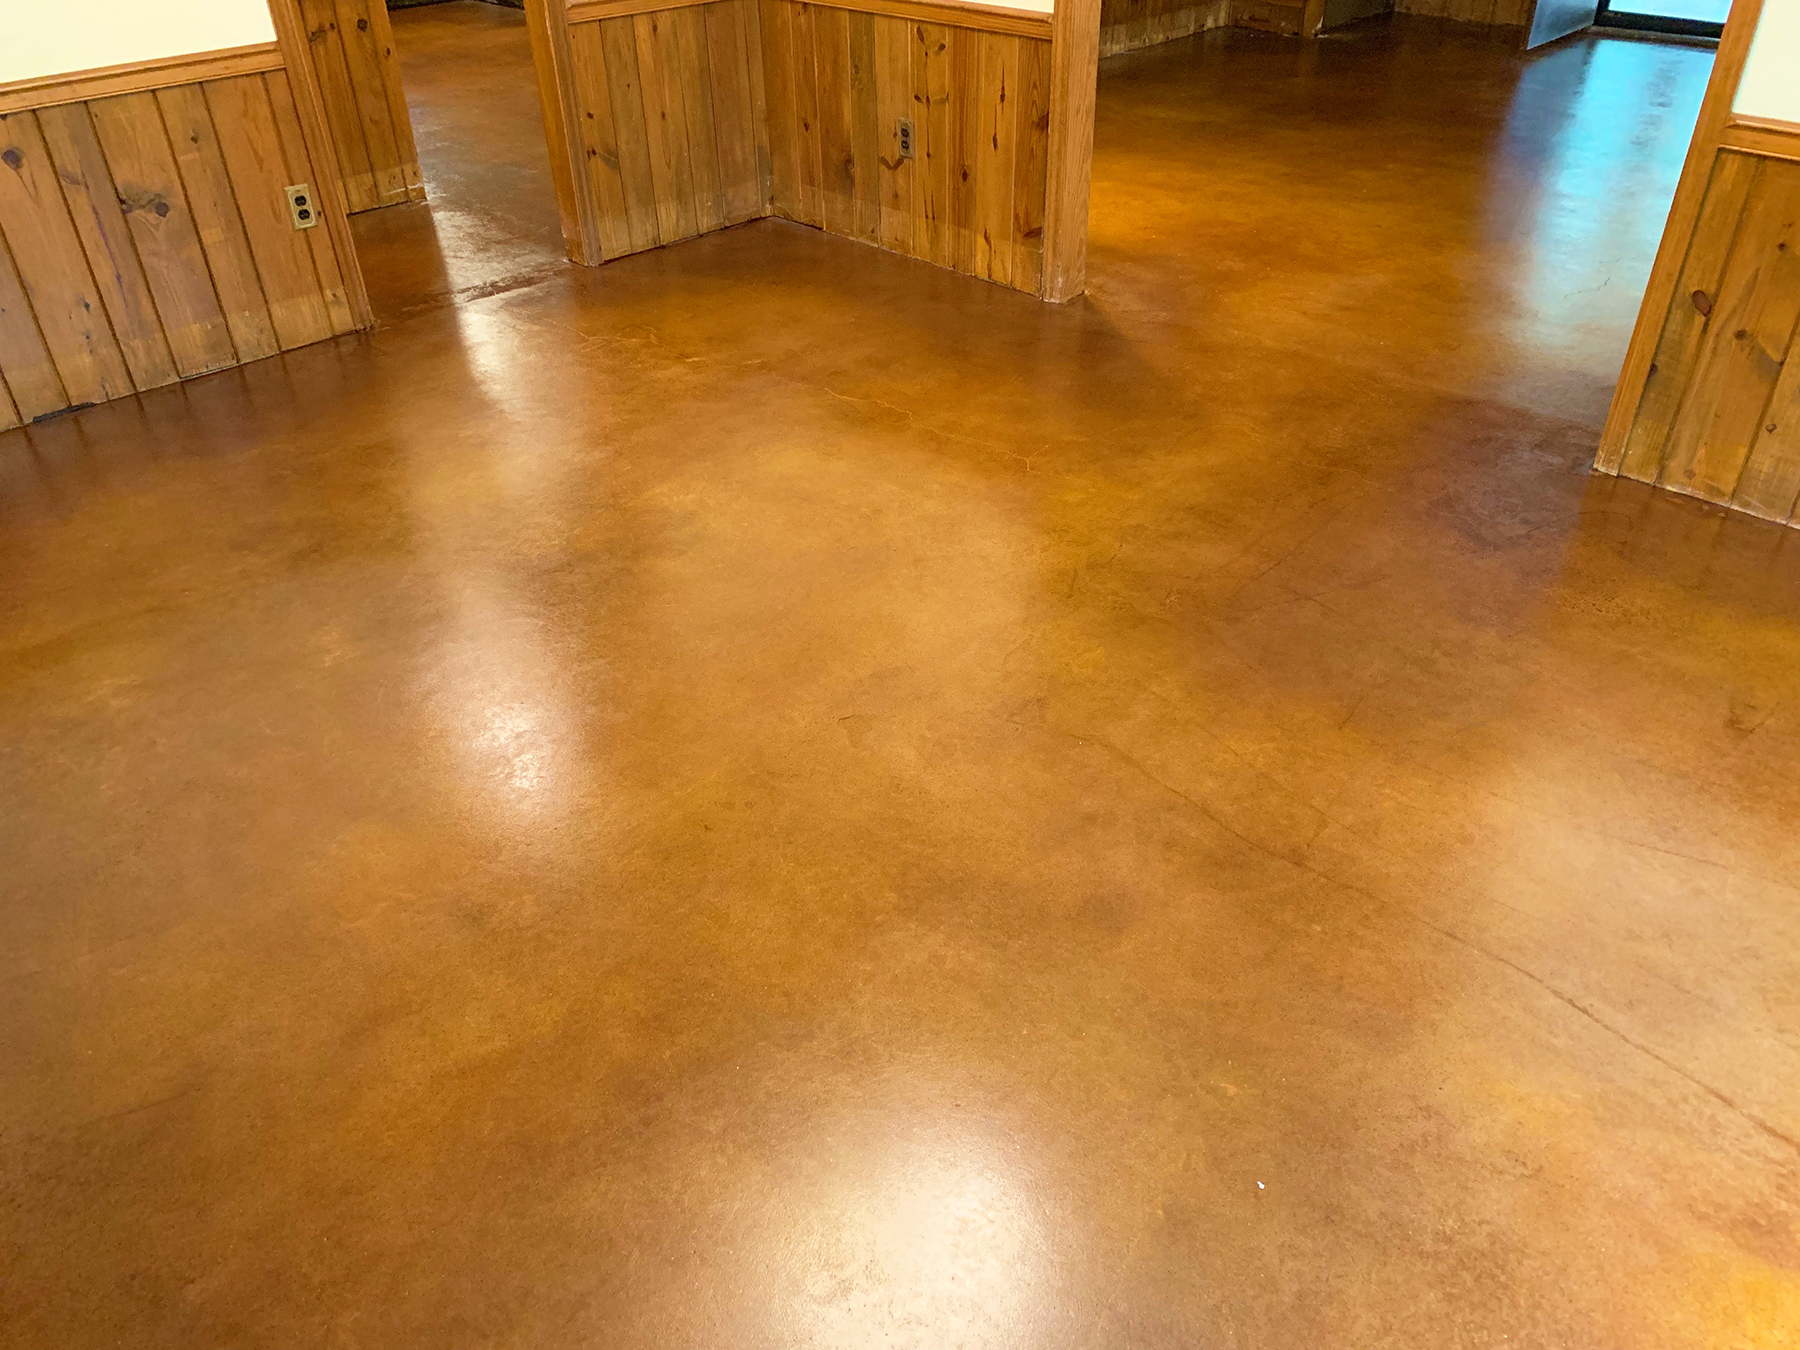 Stained Concrete Atlanta - Concrete Staining — Grindkings